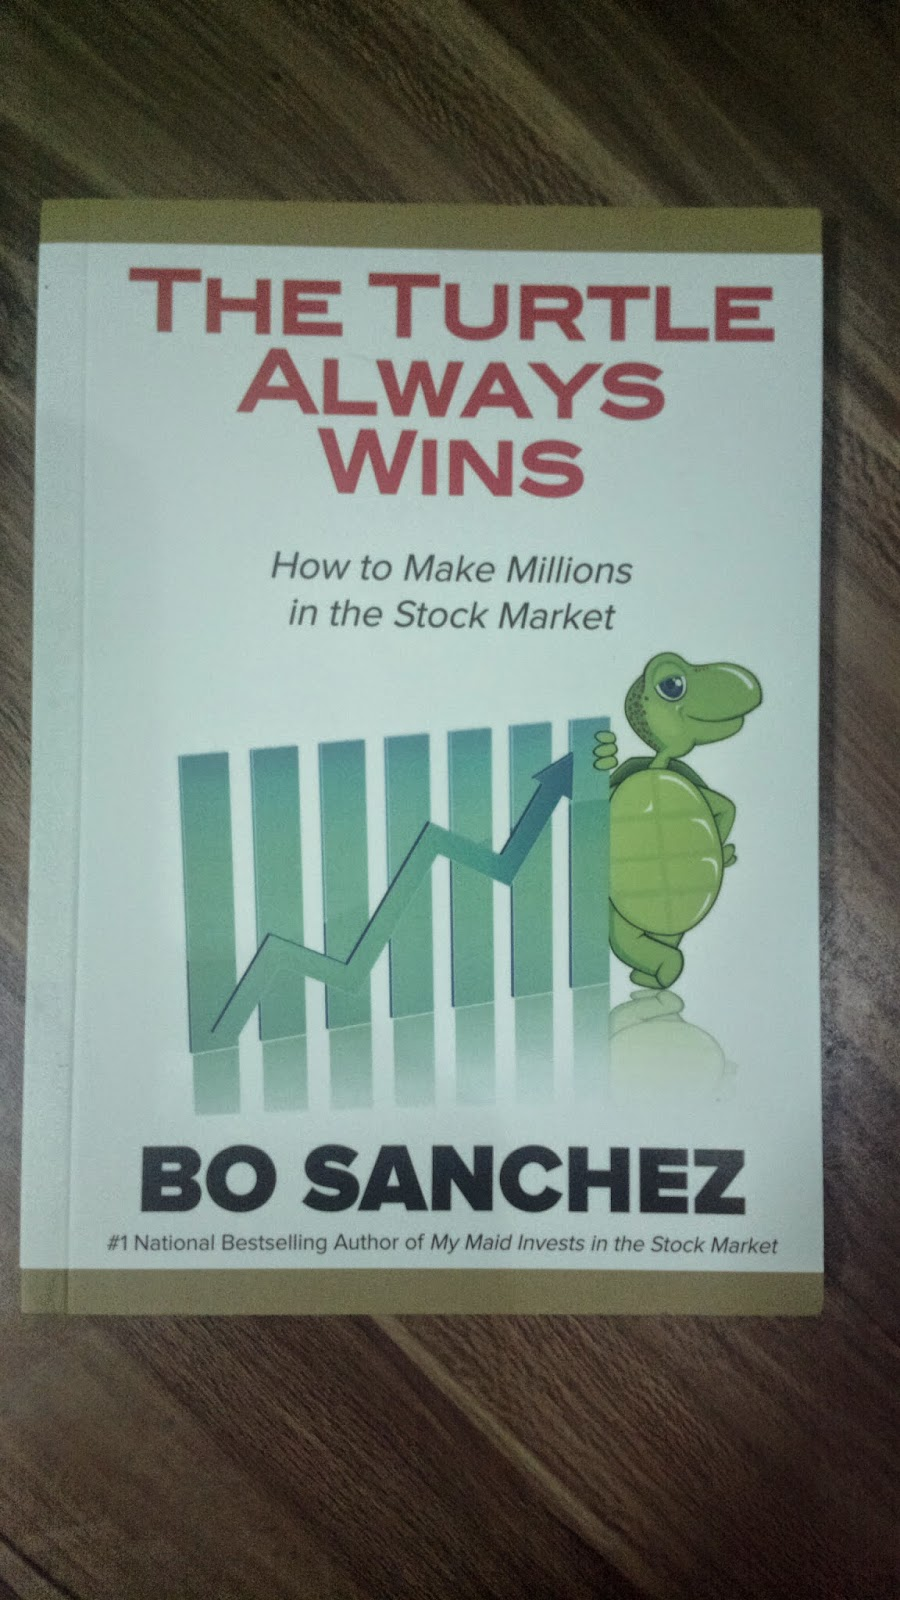 The Turtle Always Wins (How to Make Millions in the Stock Market)